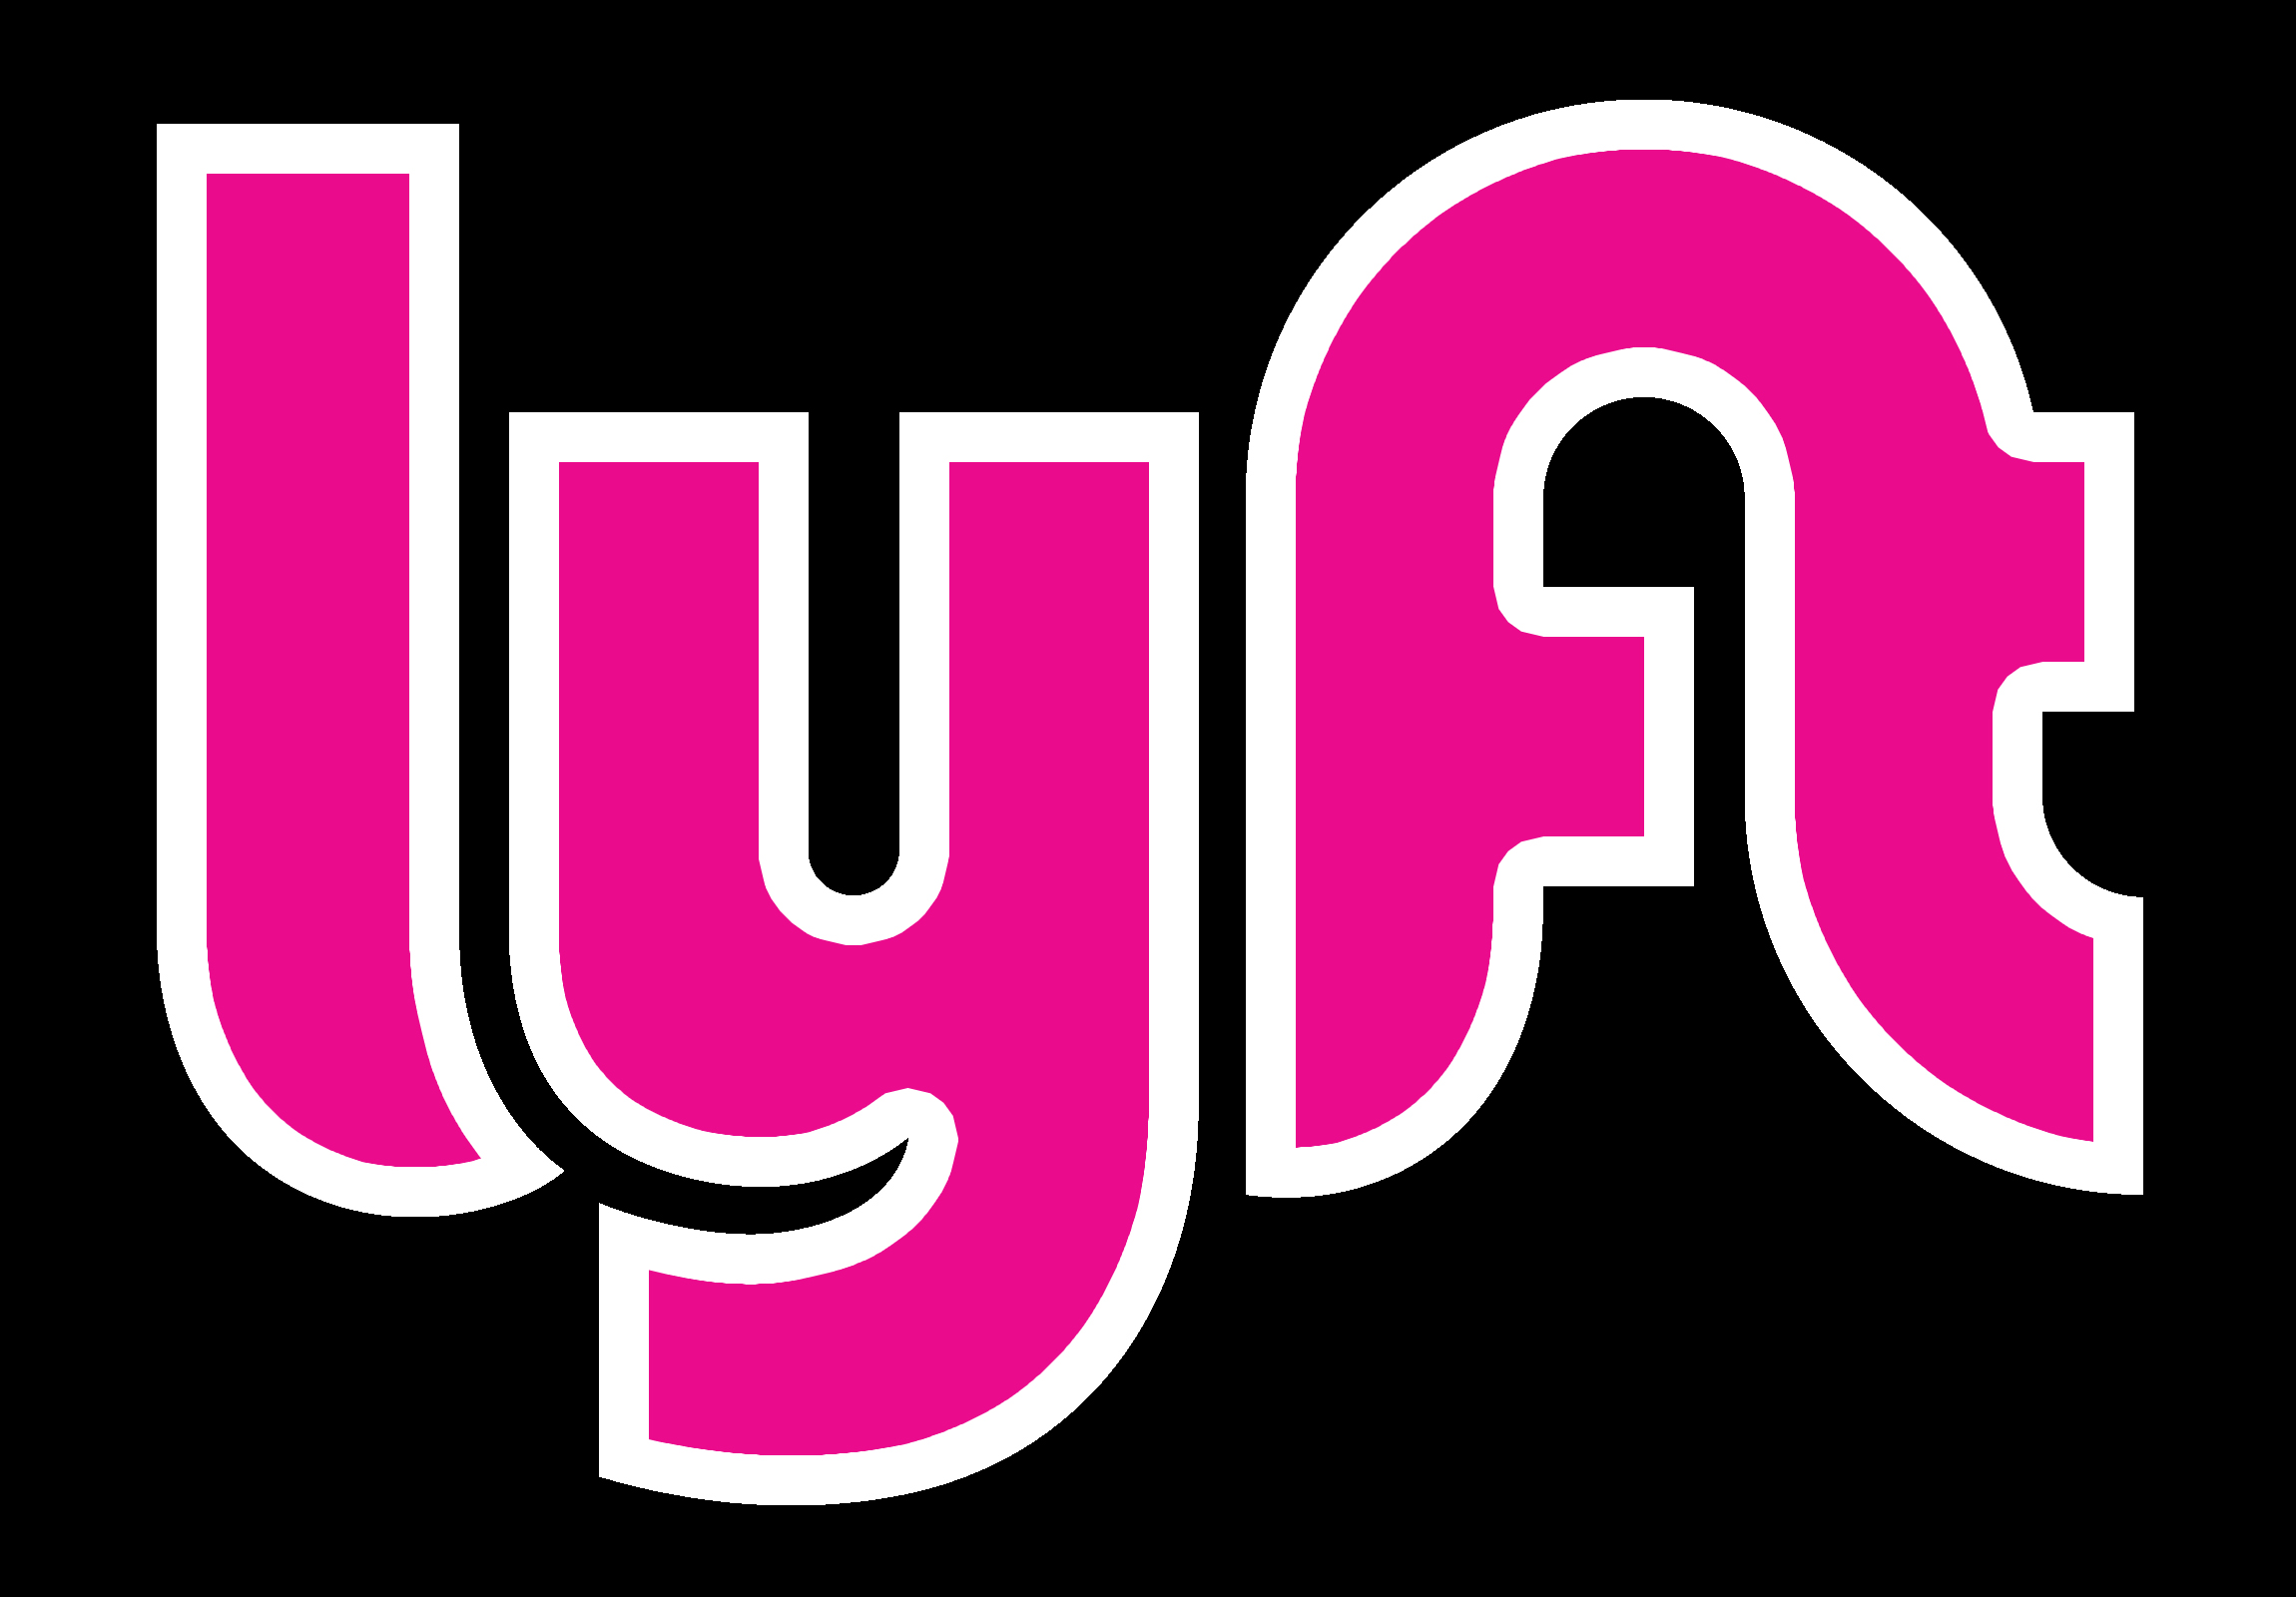 Lyft Logo, Lyft Symbol, Meaning, History and Evolution